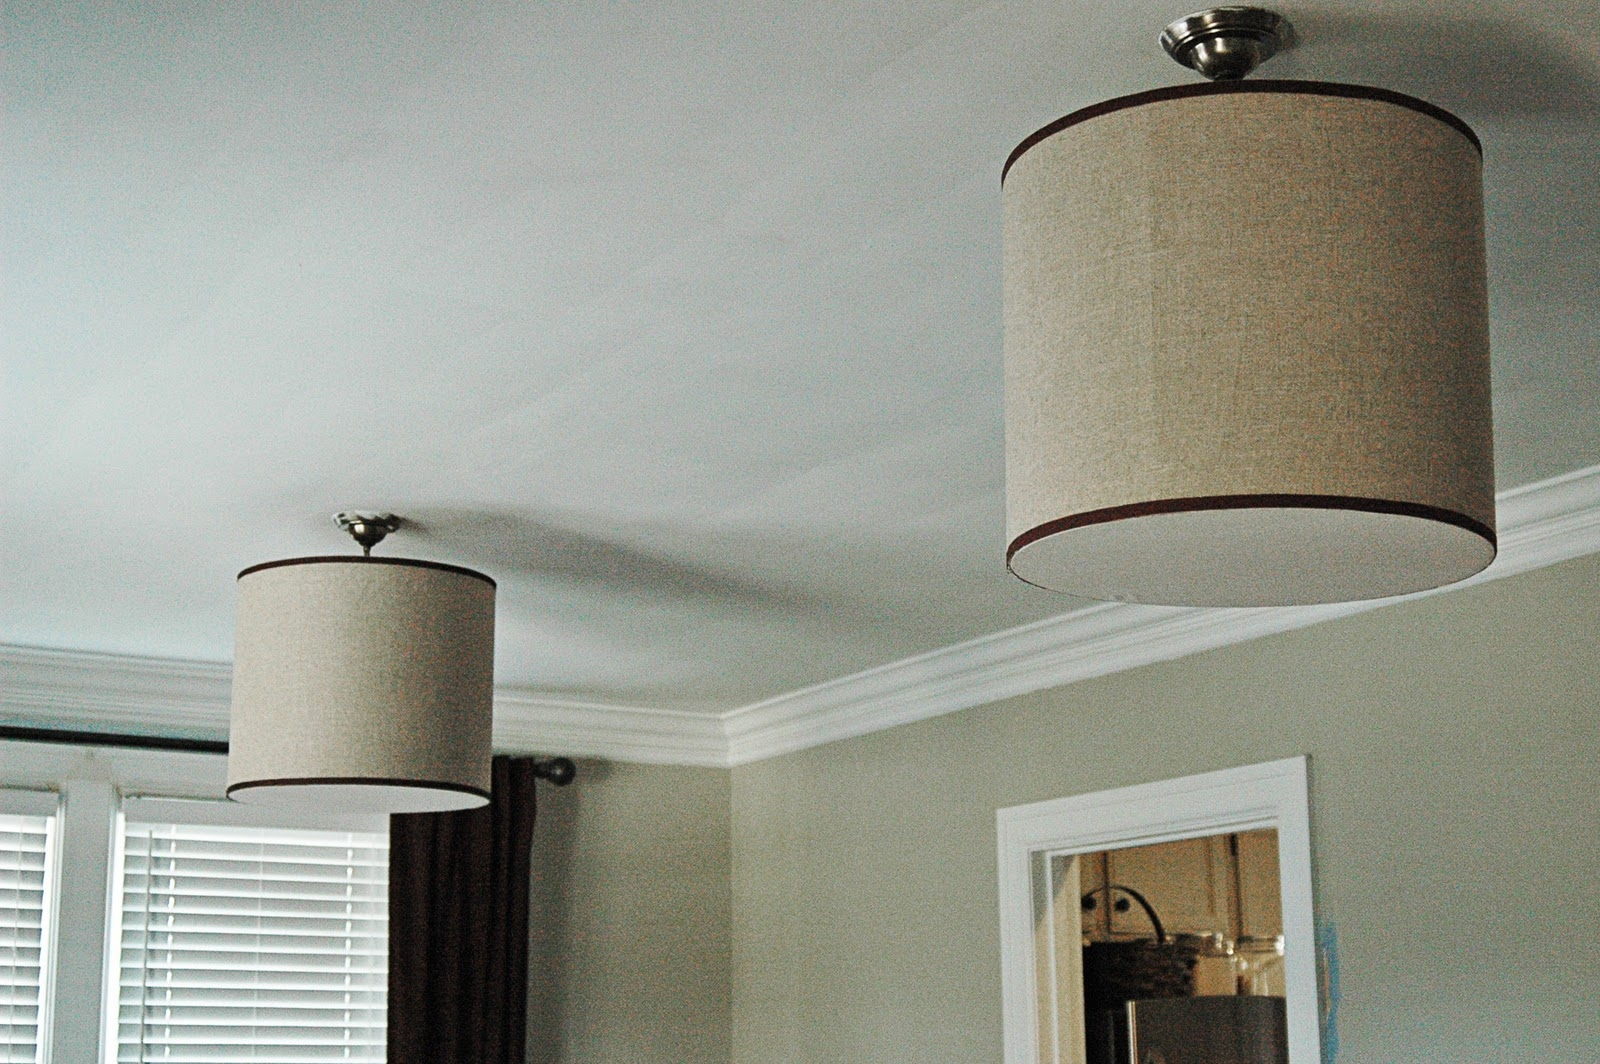 Awesome Barrel Lamp Shade Chandeliers Design Extra Large Drum For Drum Lamp Shades For Chandeliers (View 25 of 25)